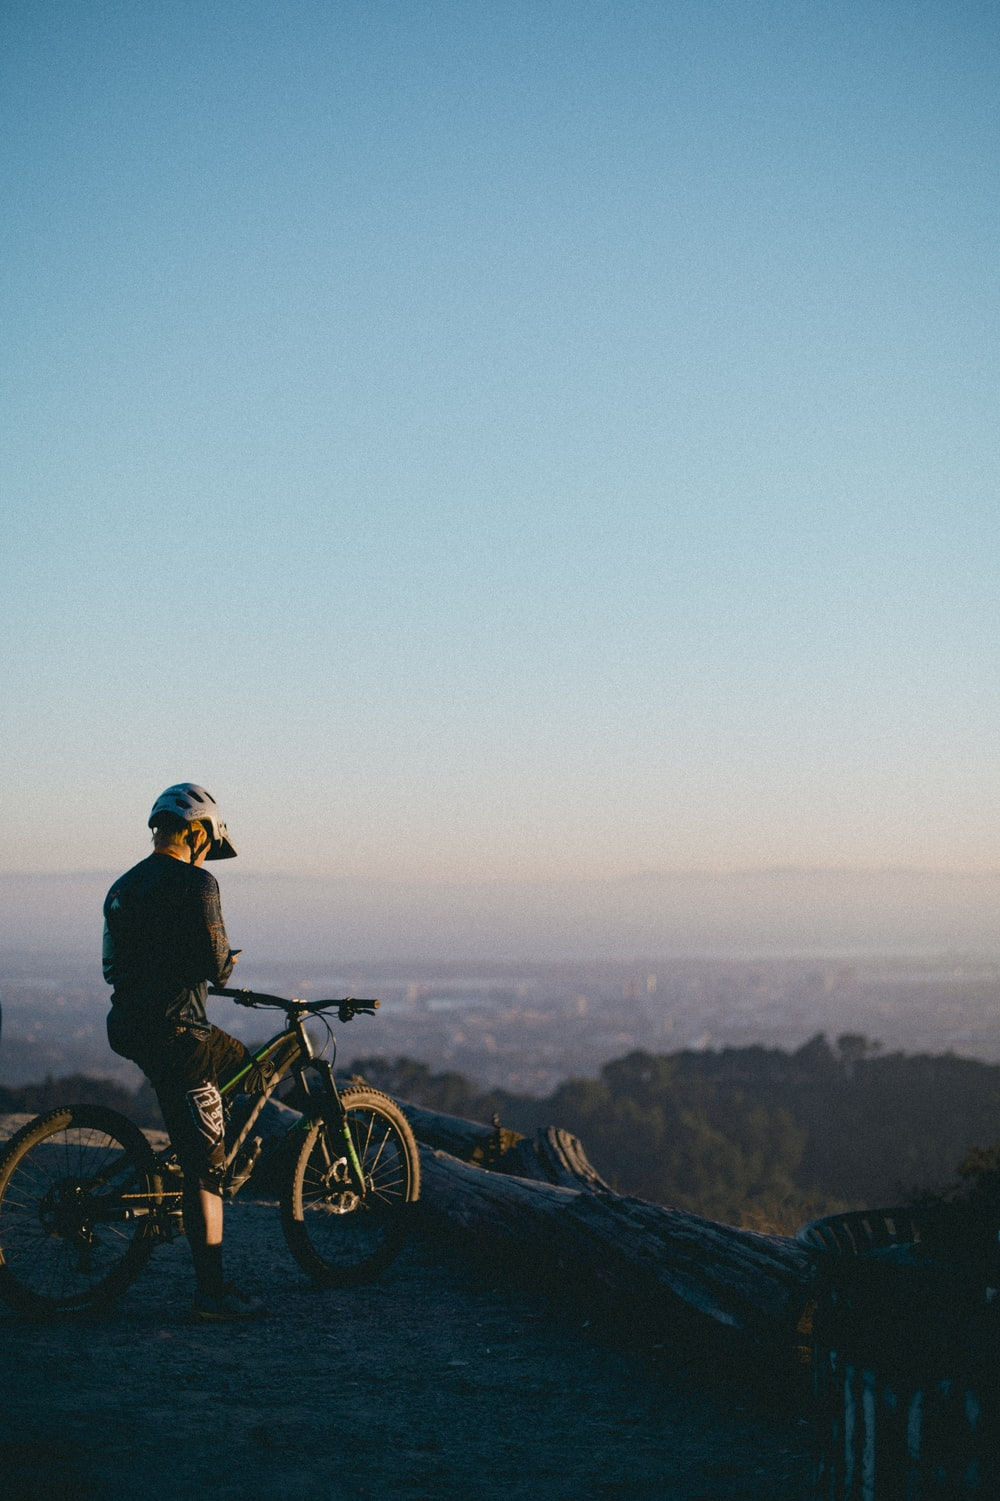 man riding on bicycle while standing on peak